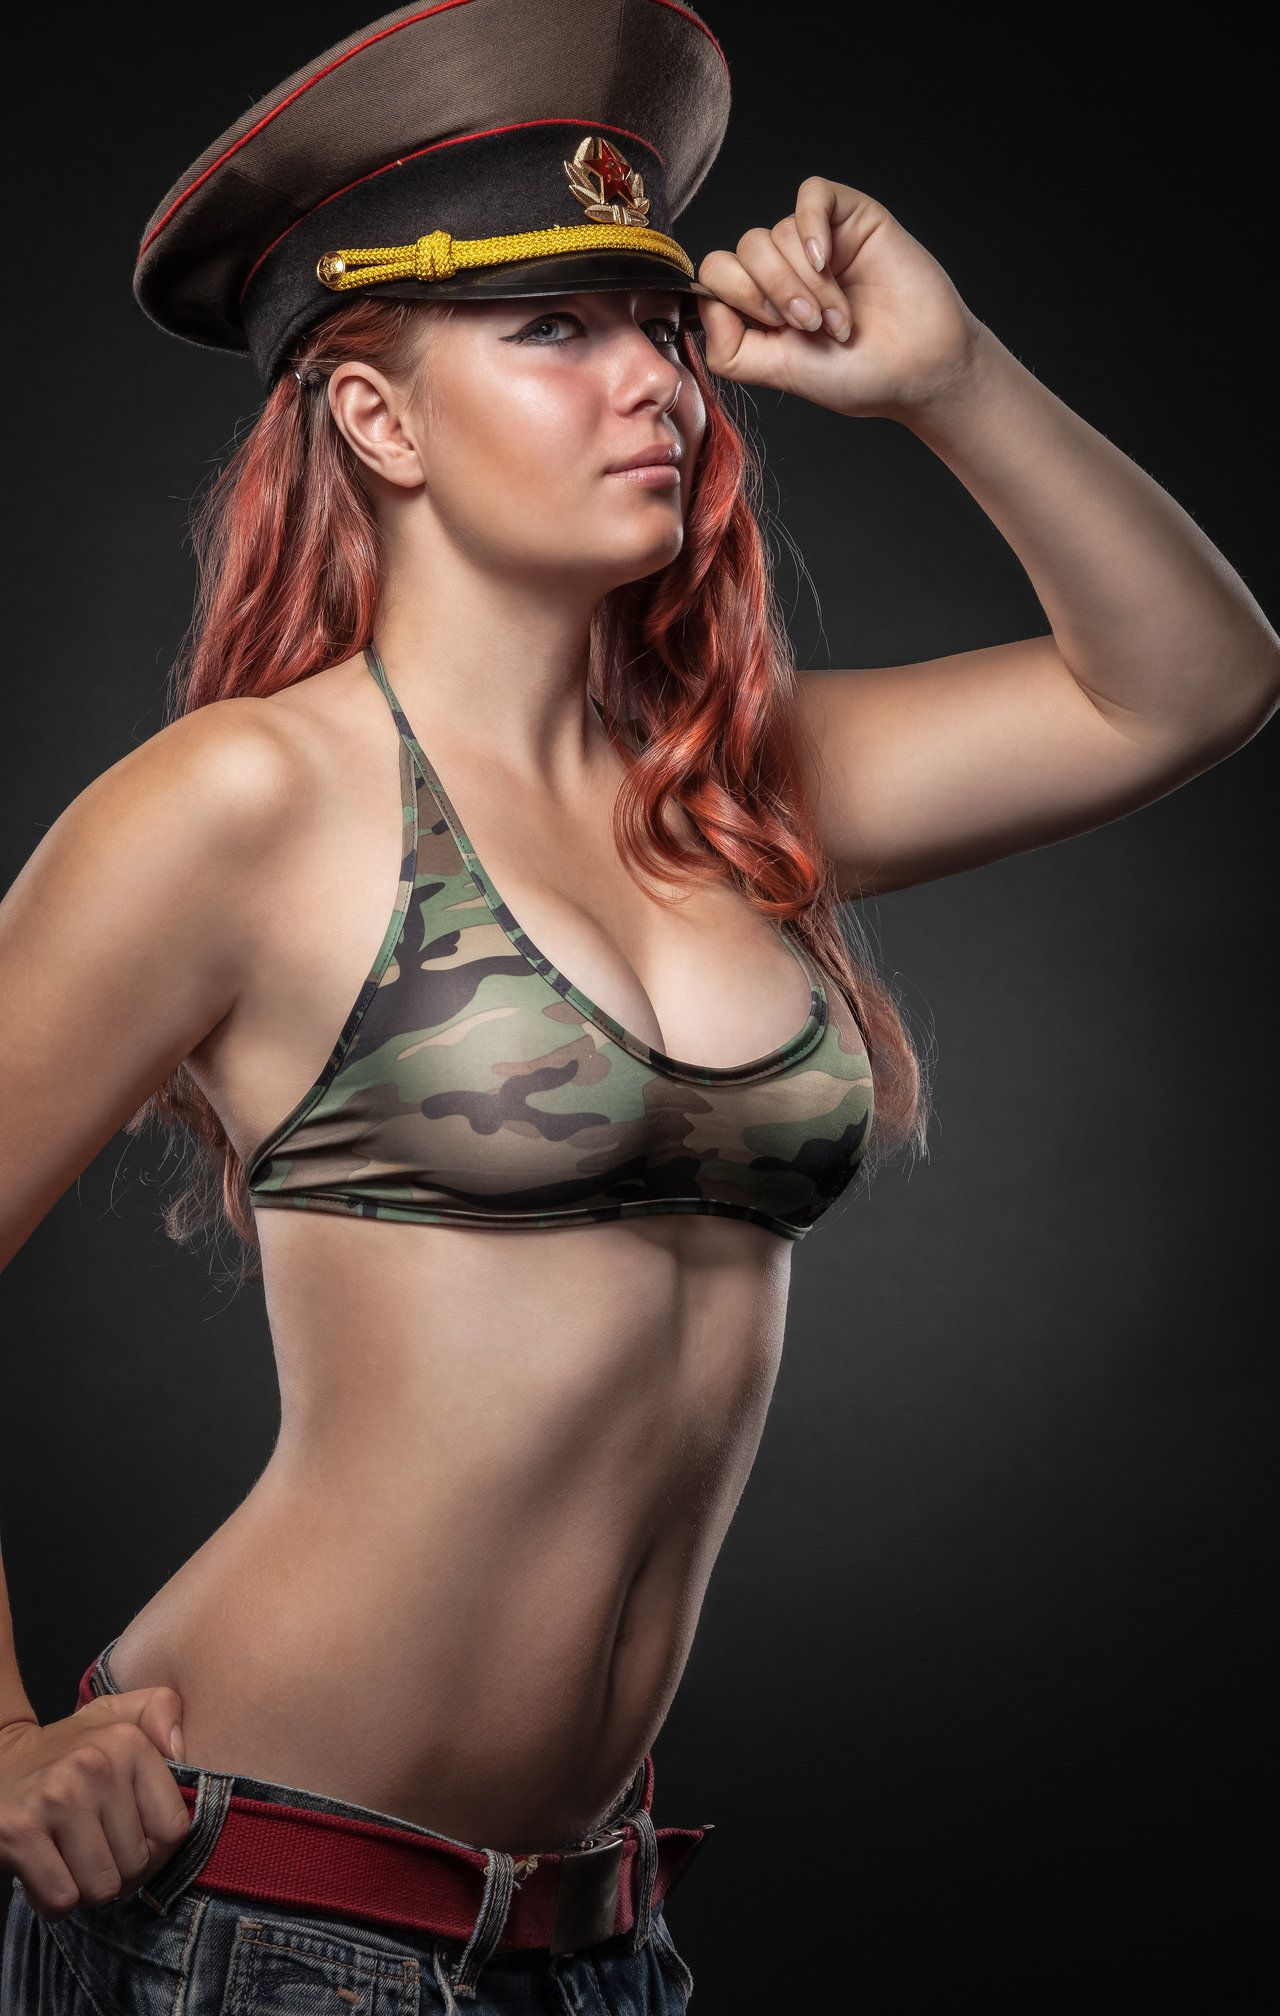 Agree with Nude army pin up